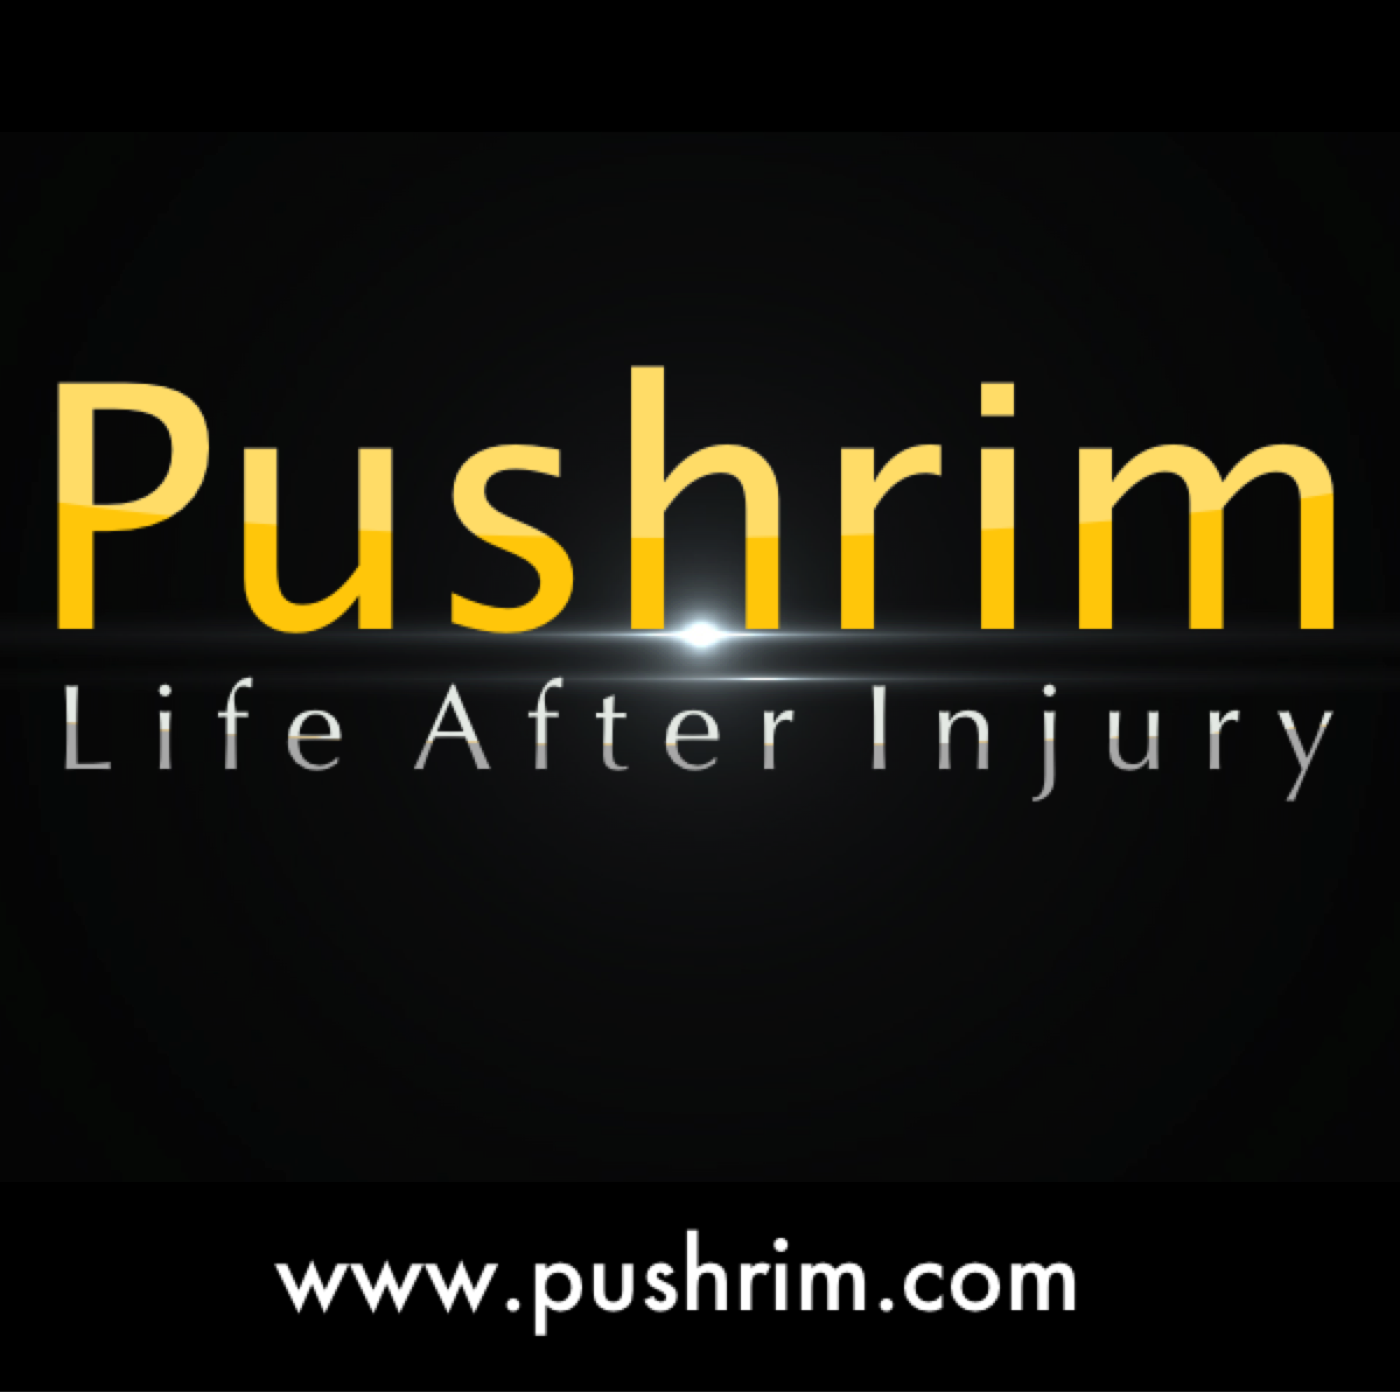 Pushrim - Life After Spinal Injury